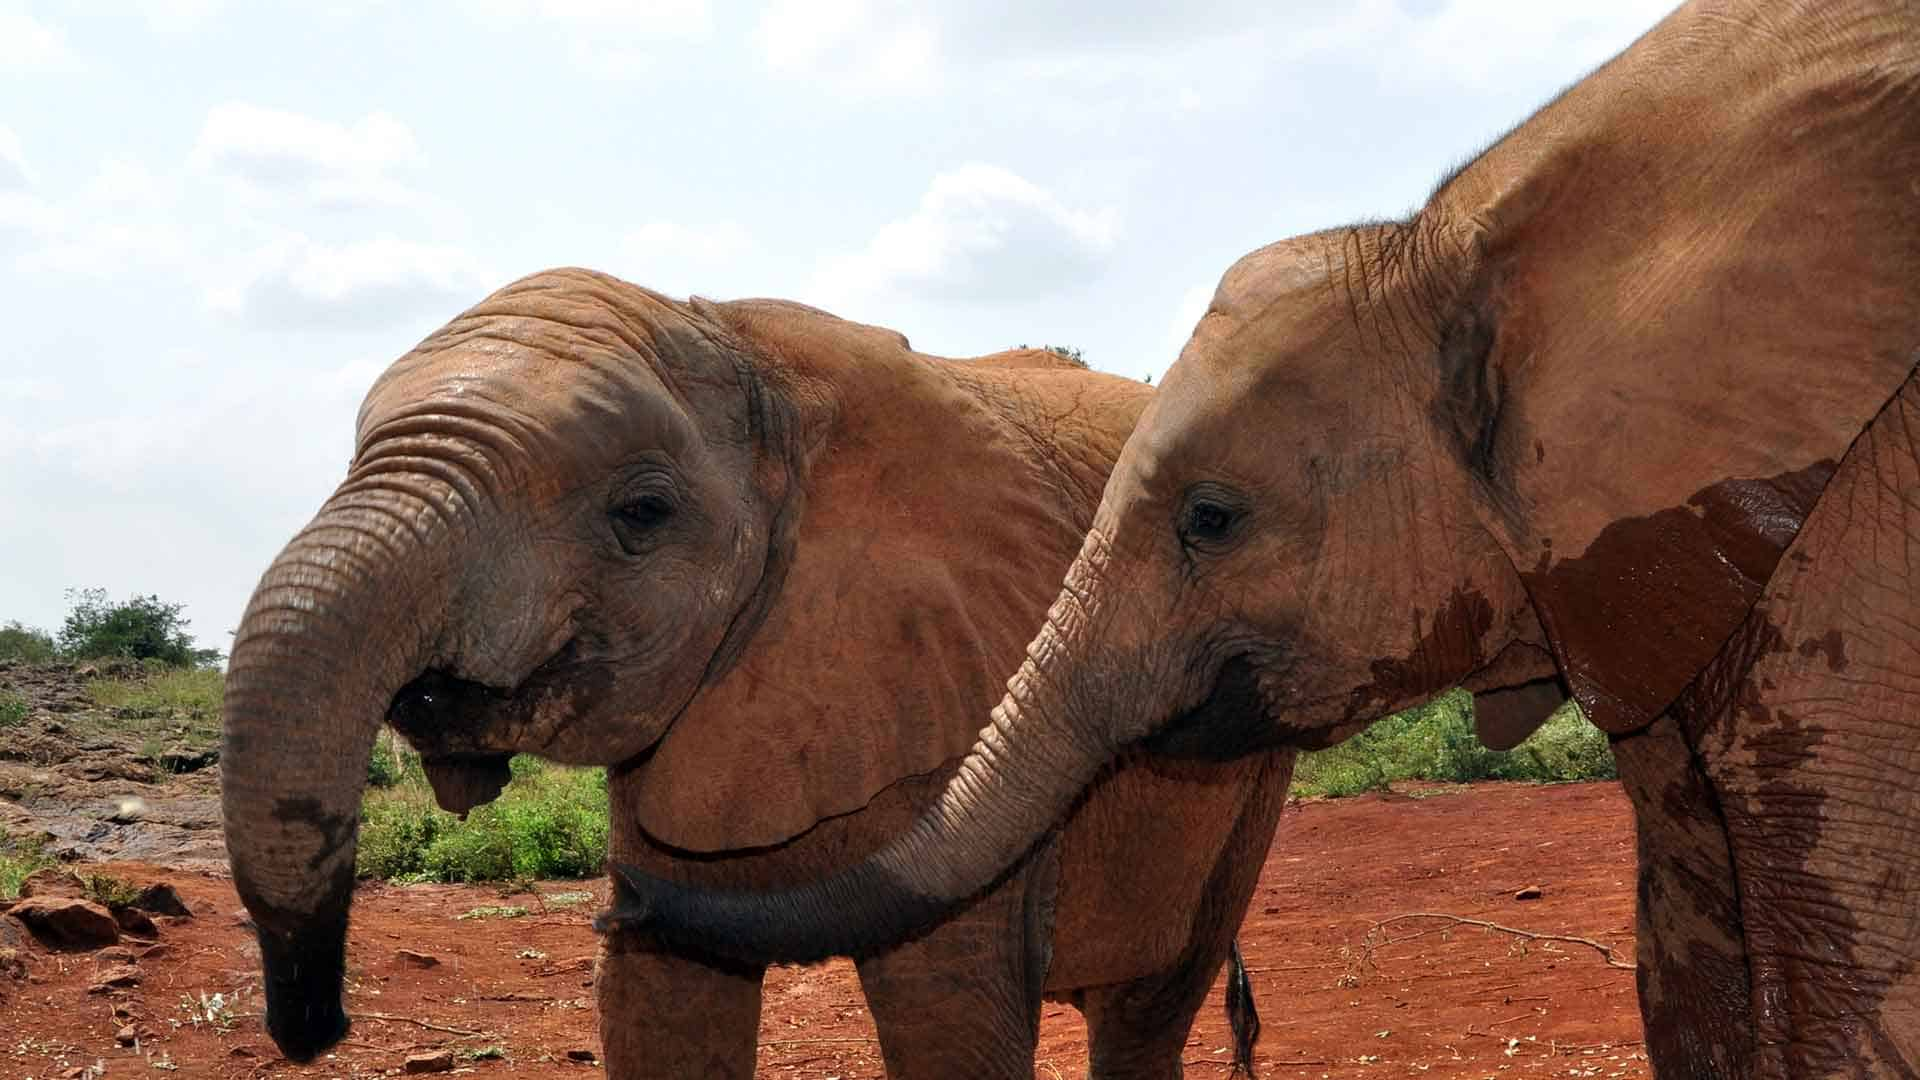 two young elephants with wet trunks on an african safari vacation